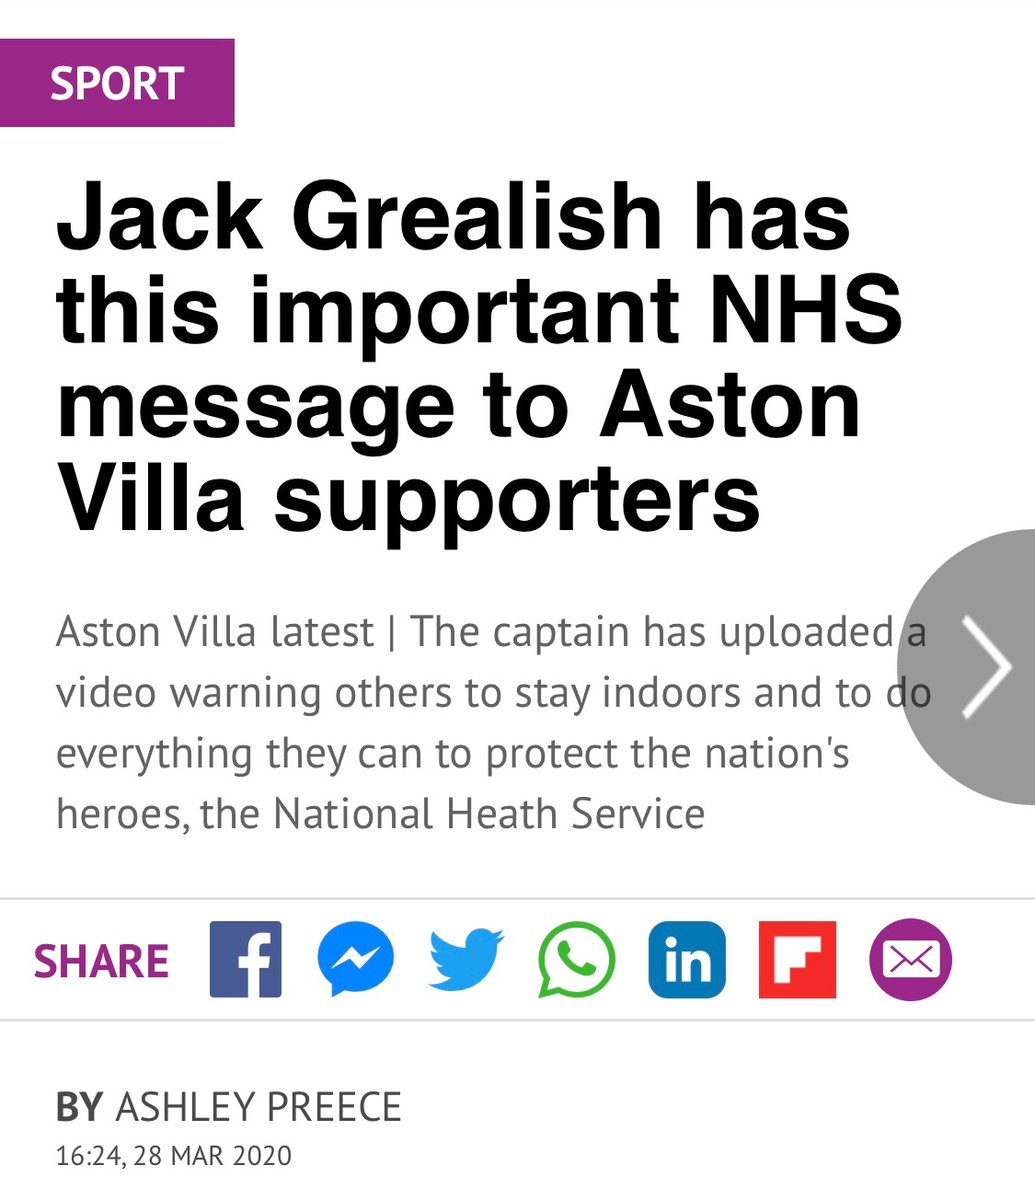 Jack Grealish: Stay at home  Also Jack Grealish: Lets get pissed and drink drive when on a lockdown!  ROLE MODEL  #wwfc<br>http://pic.twitter.com/YX43t5TCx6